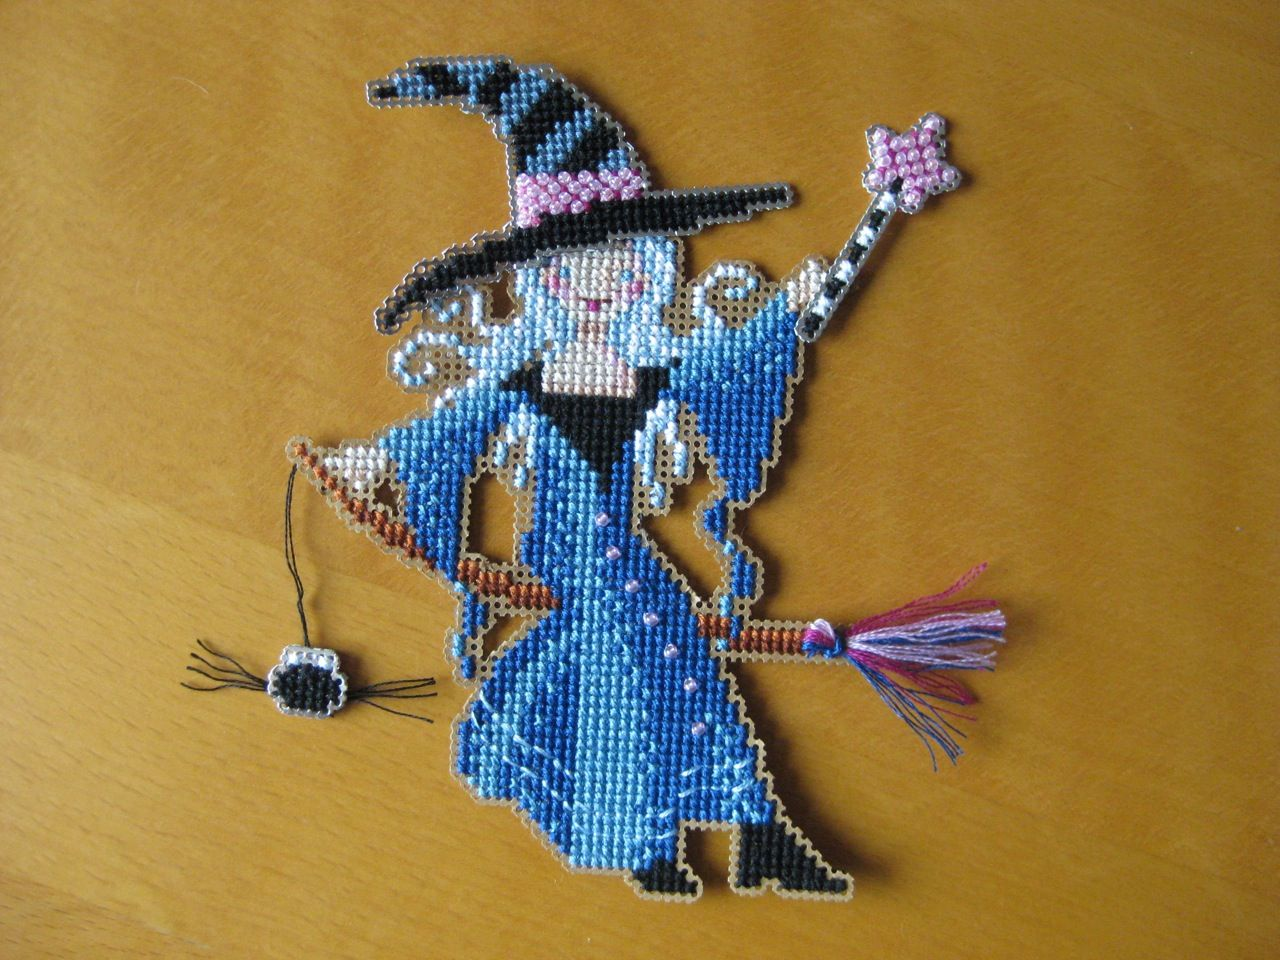 A Halloween ornament from a 'Brooke's Books' design - cross stitch on perforated paper